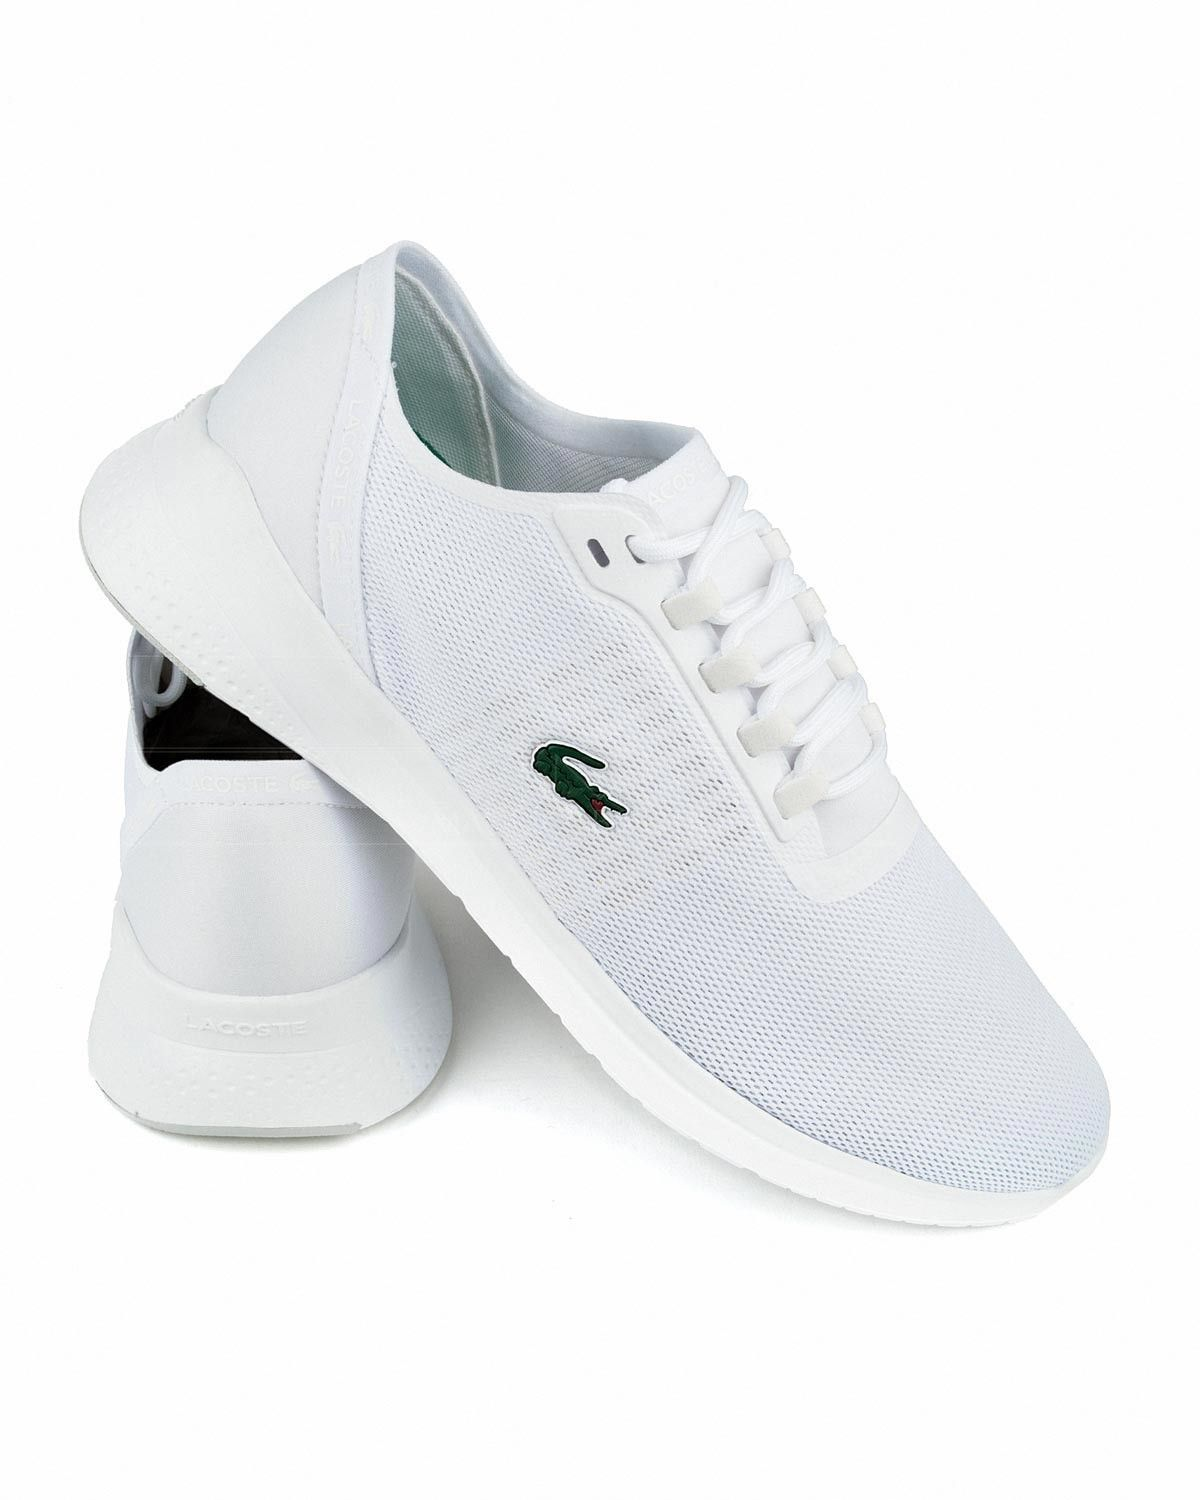 the best attitude 82895 9b0fc Zapatillas LACOSTE ® Lt Fit ✶ Blanco   ENVIO GRATIS